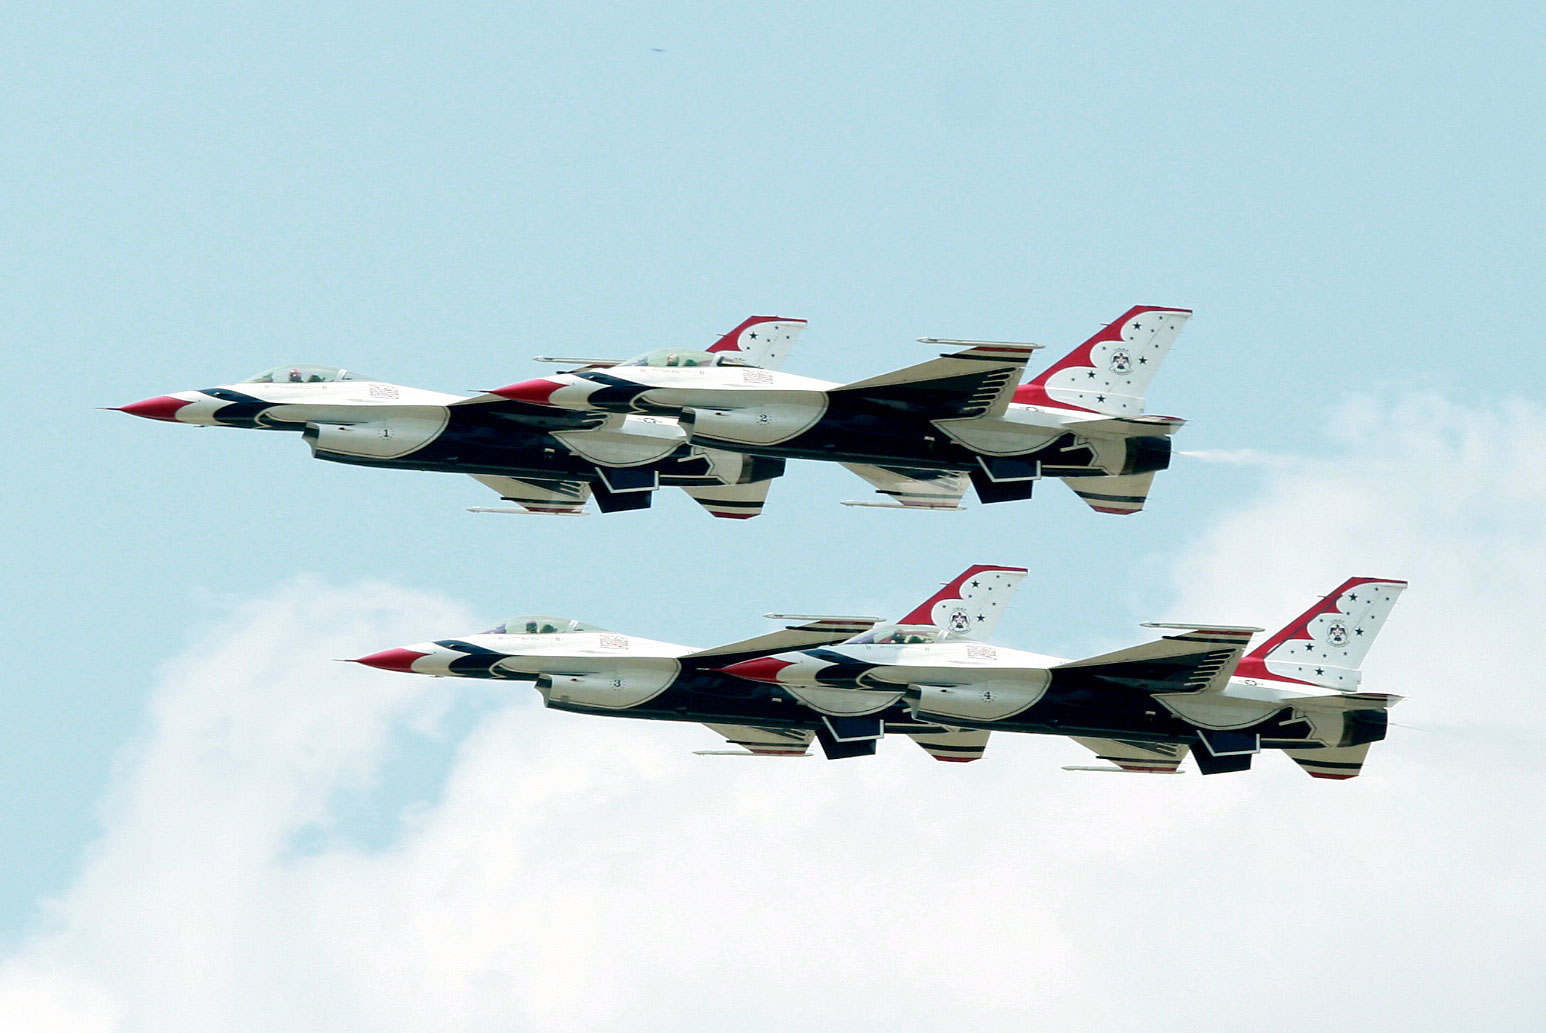 The 2014 Thunder Over Michigan Airshow featured the USAF Thunderbirds.